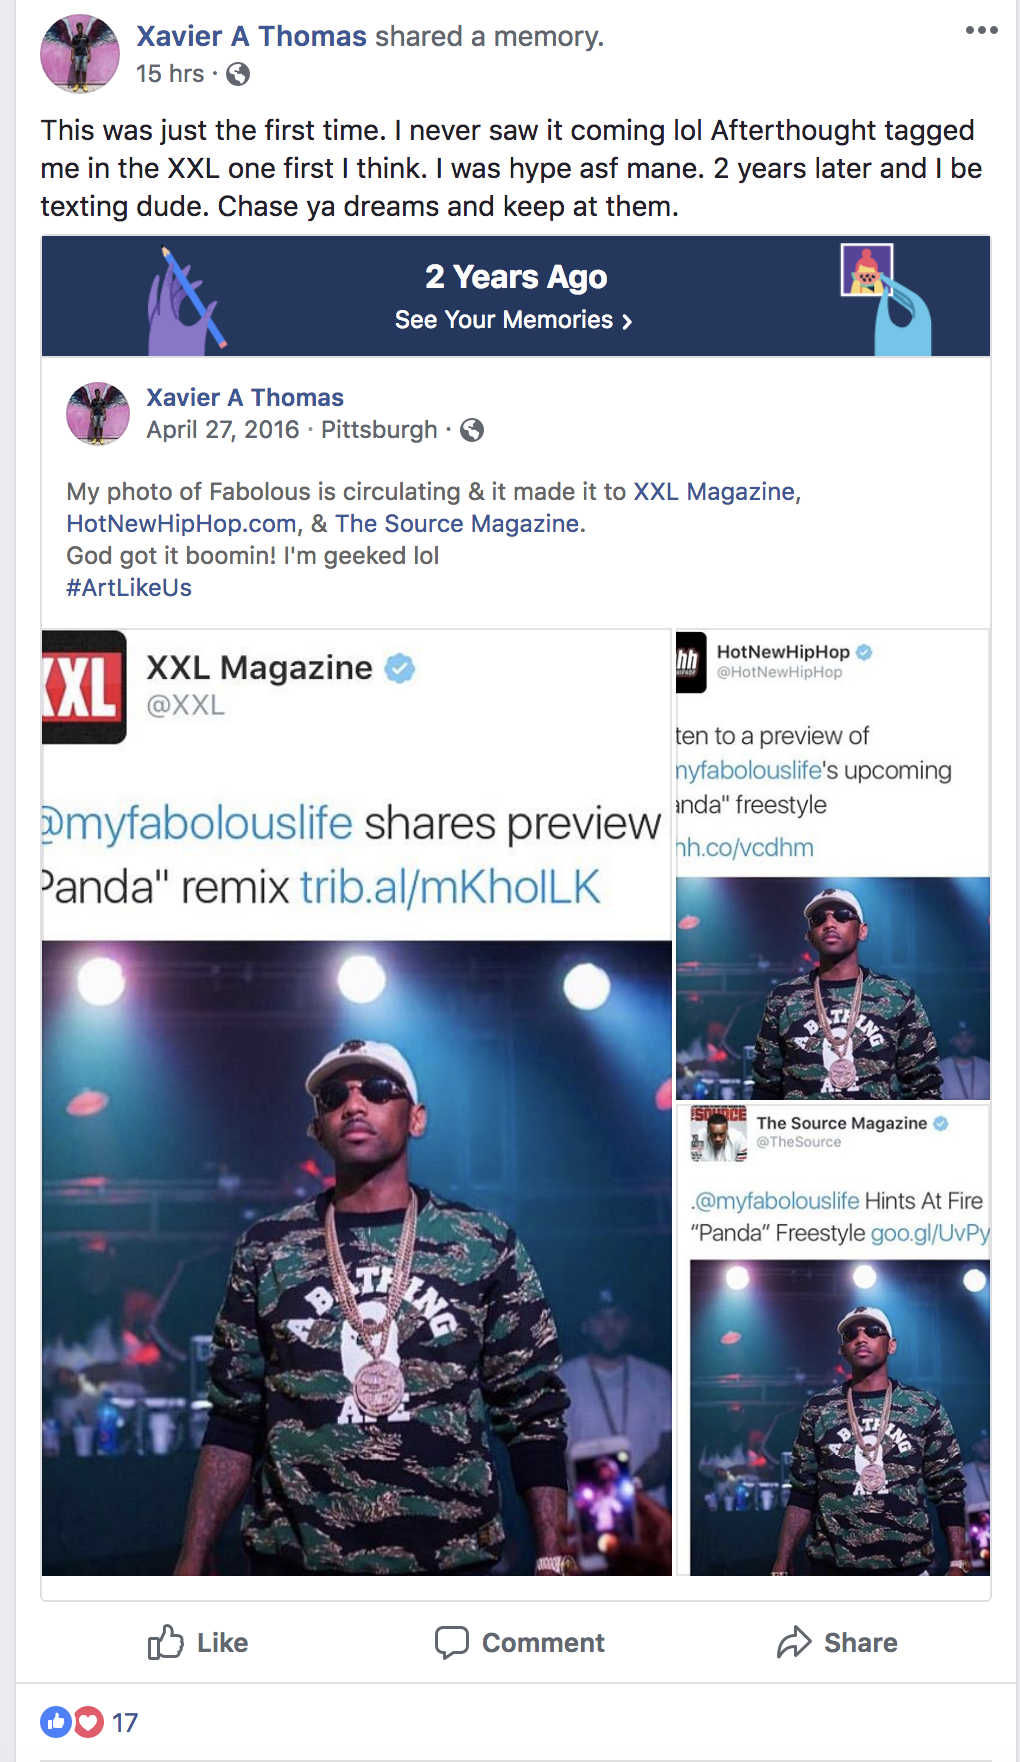 Thomas shared a Facebook memory when prominent publications XXL Magazine, Hot New Hip Hop and The Source Magazine published his photo.